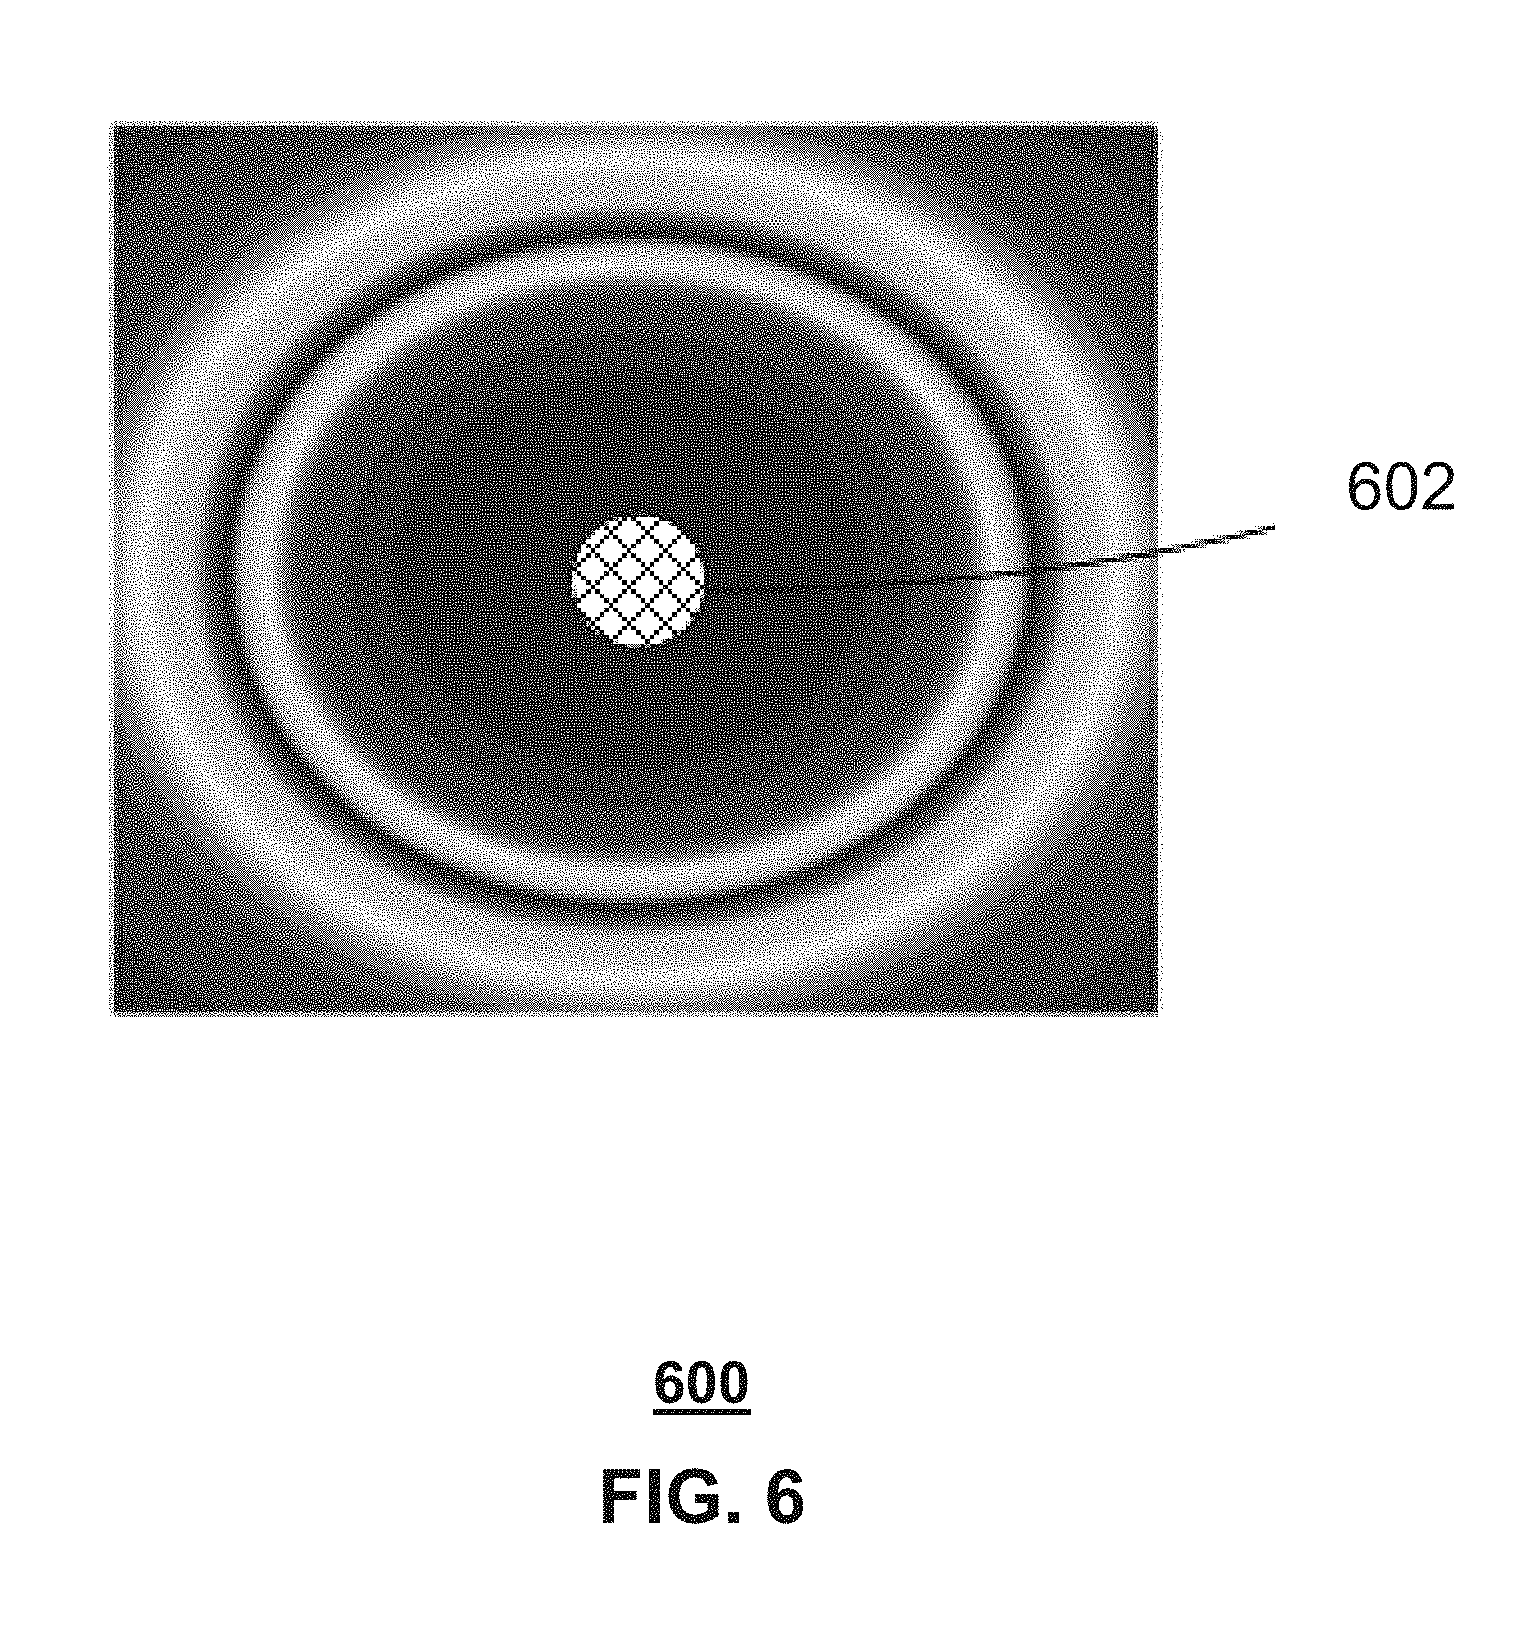 US10178445B2 - Methods, devices, and systems for load